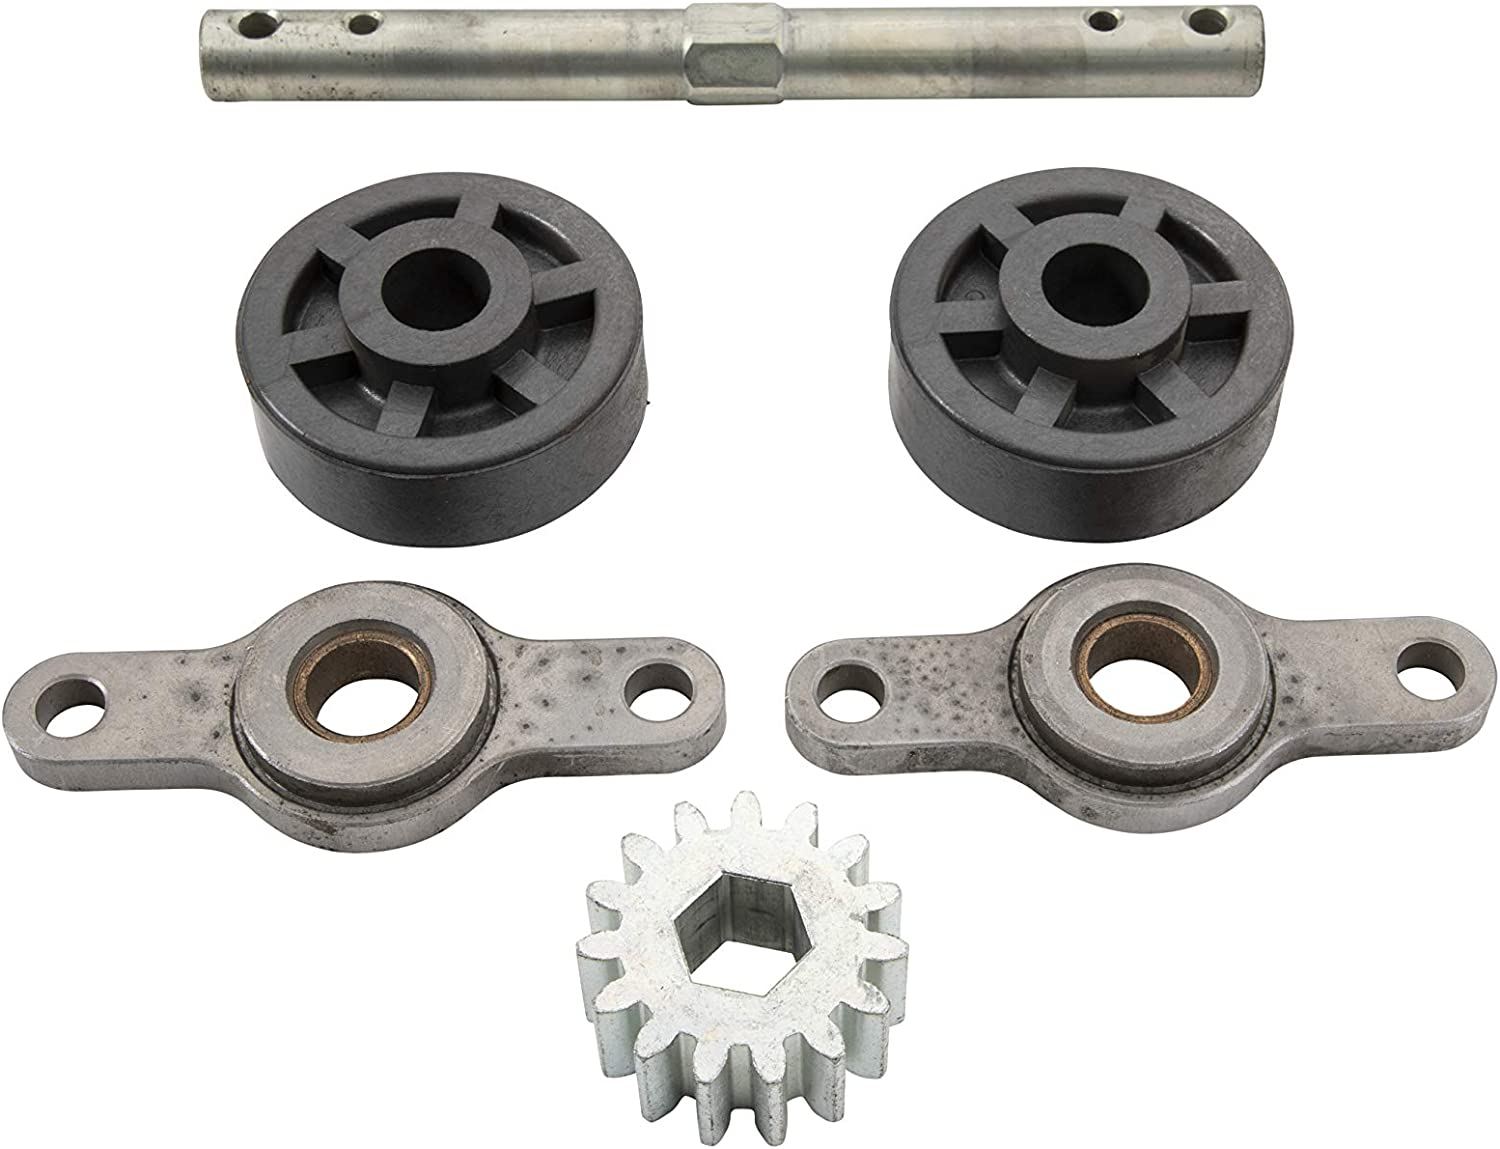 Lippert 140409 Standard Slide-Out Gear Pack 2 x 3 and 3 x 3